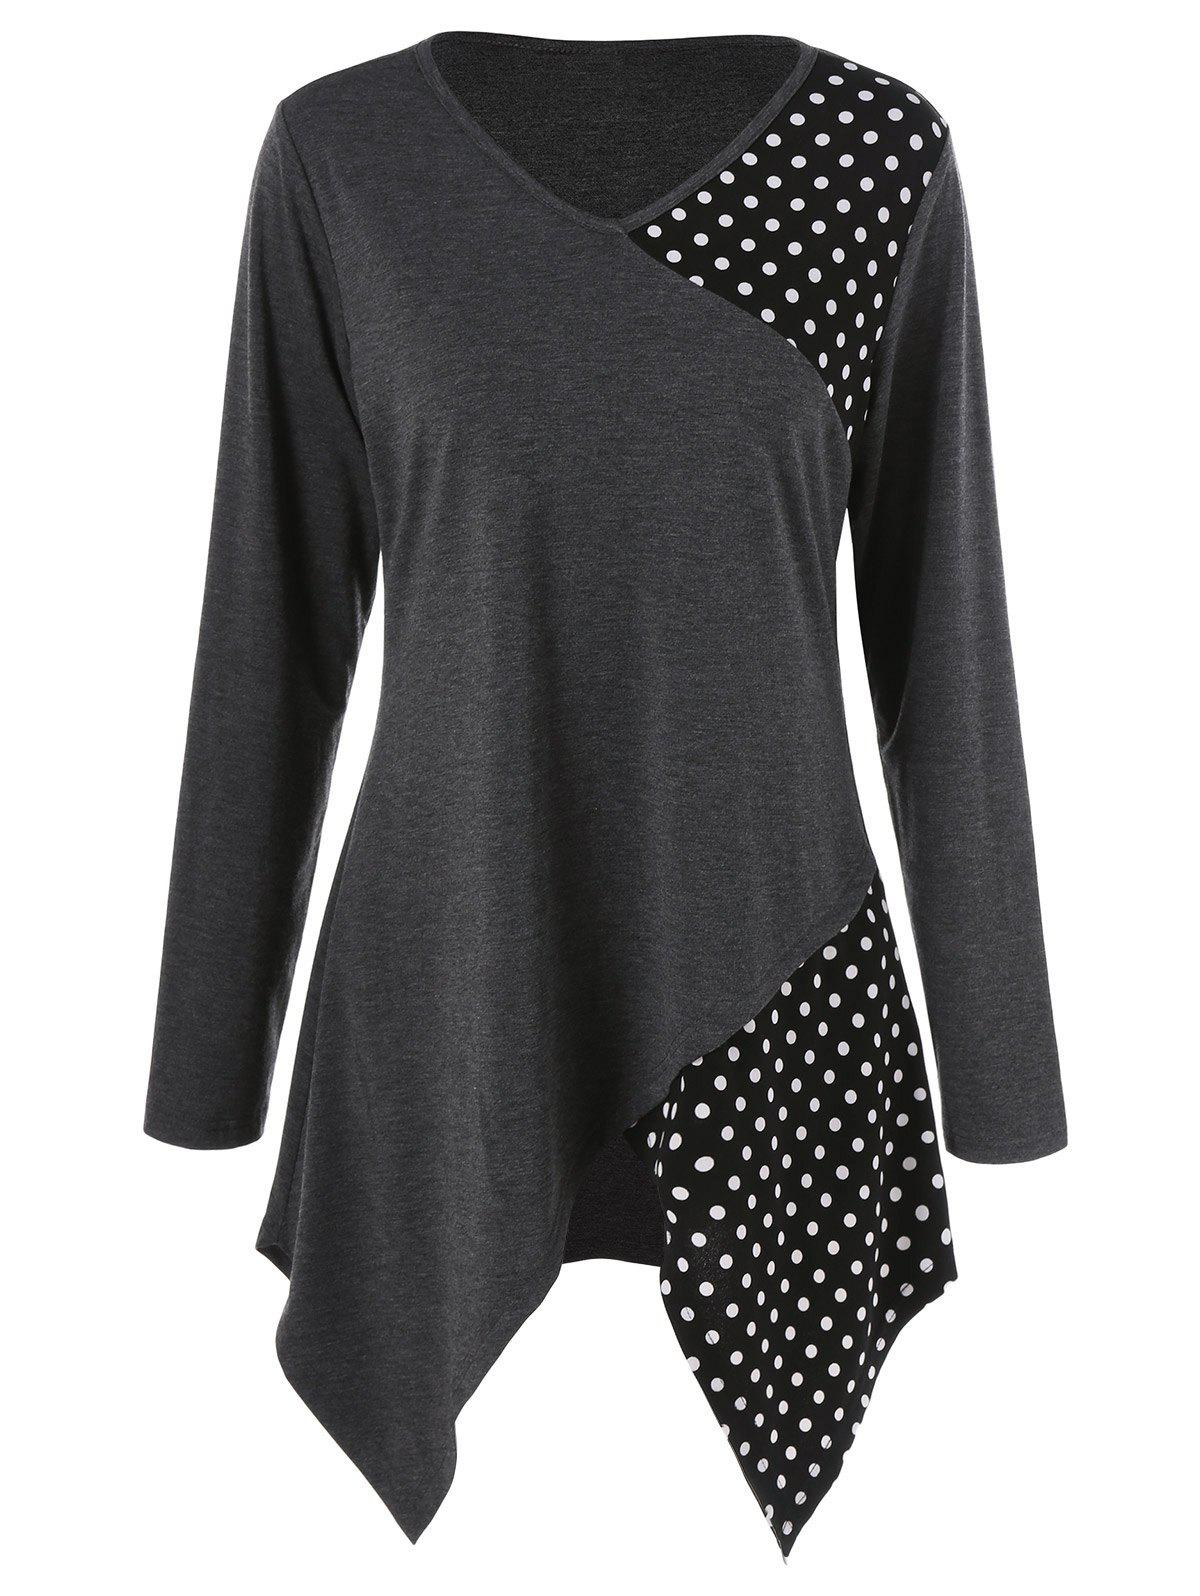 Plus Size Polka Dot Trim Asymmetrical Long Sleeve T-Shirt plus size polka dot baggy t shirt